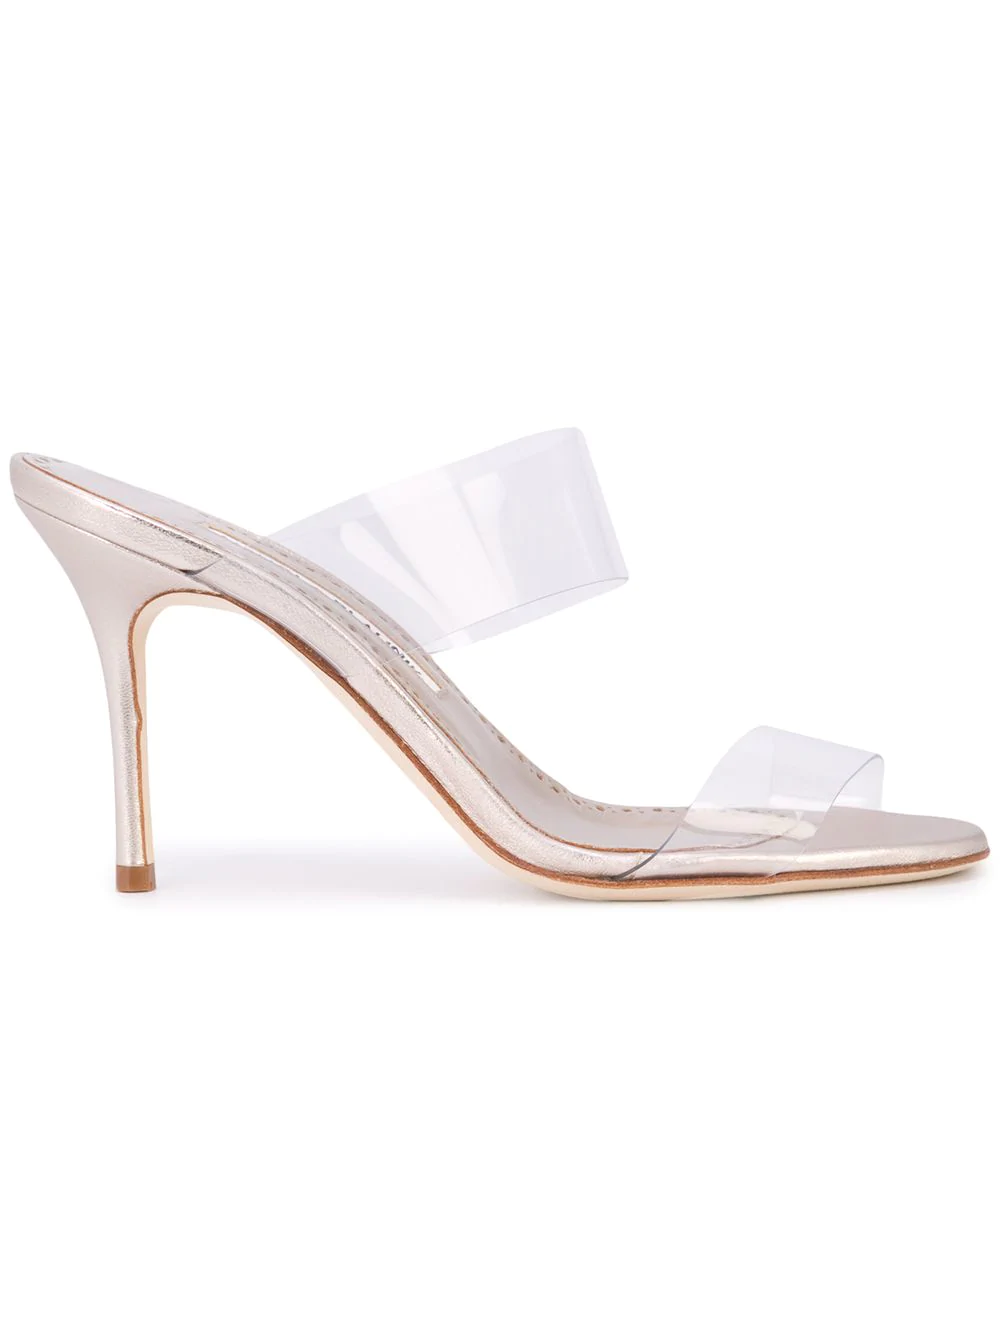 26a00d06d40aa Manolo Blahnik Scolto Leather And Pvc Slide Sandals In Neutrals ...